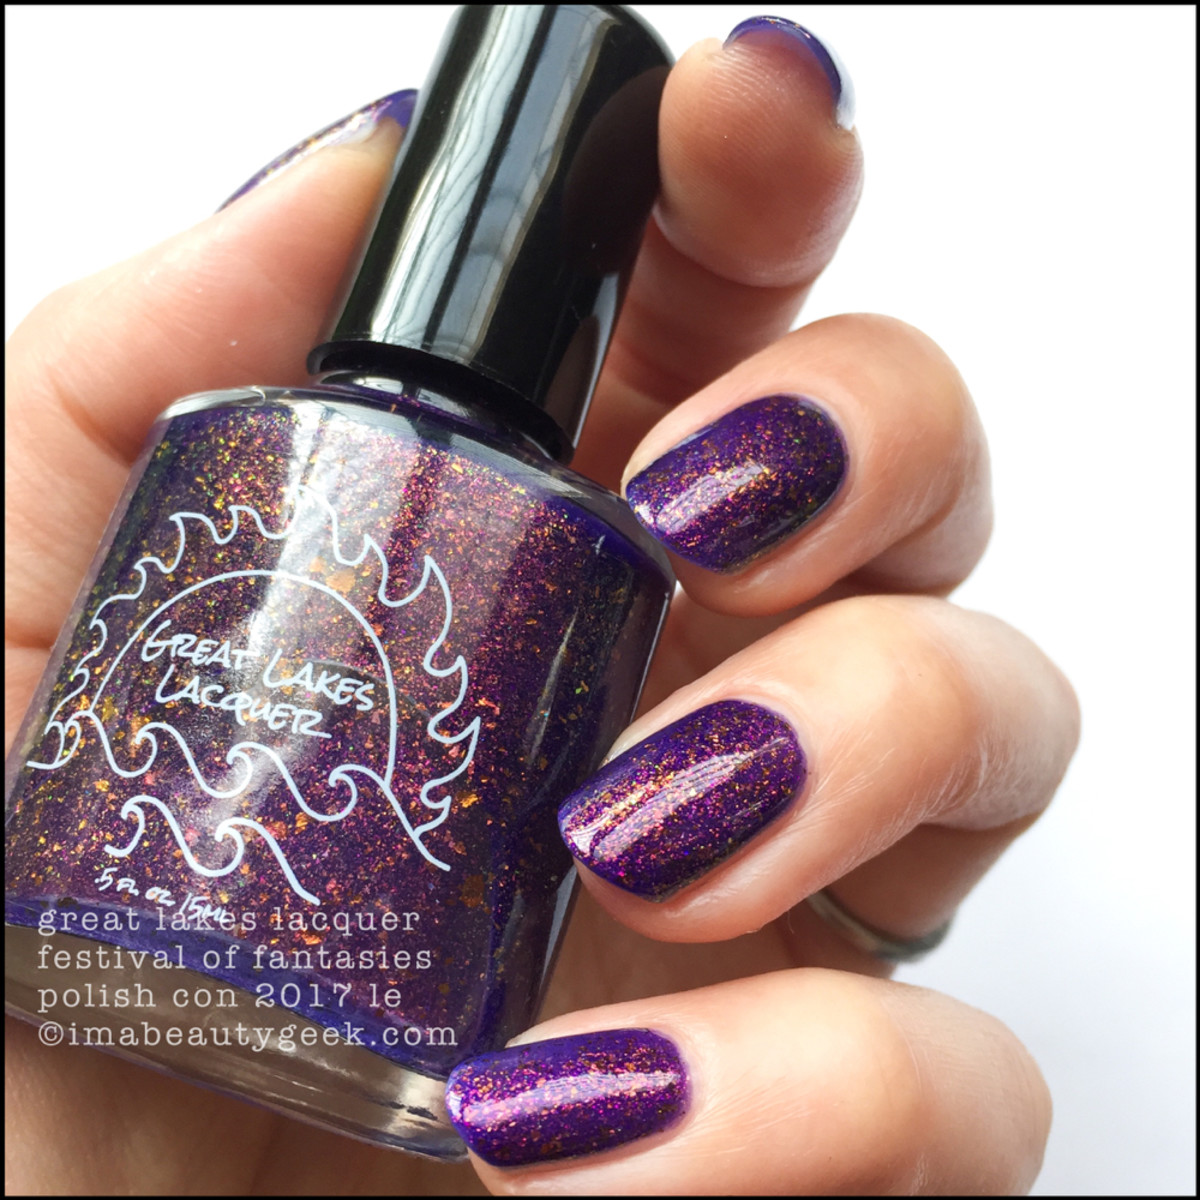 Great Lakes Lacquer Festival of Fantasies _ Great Lakes Lacquer Polish Con 2017 Limited Editions